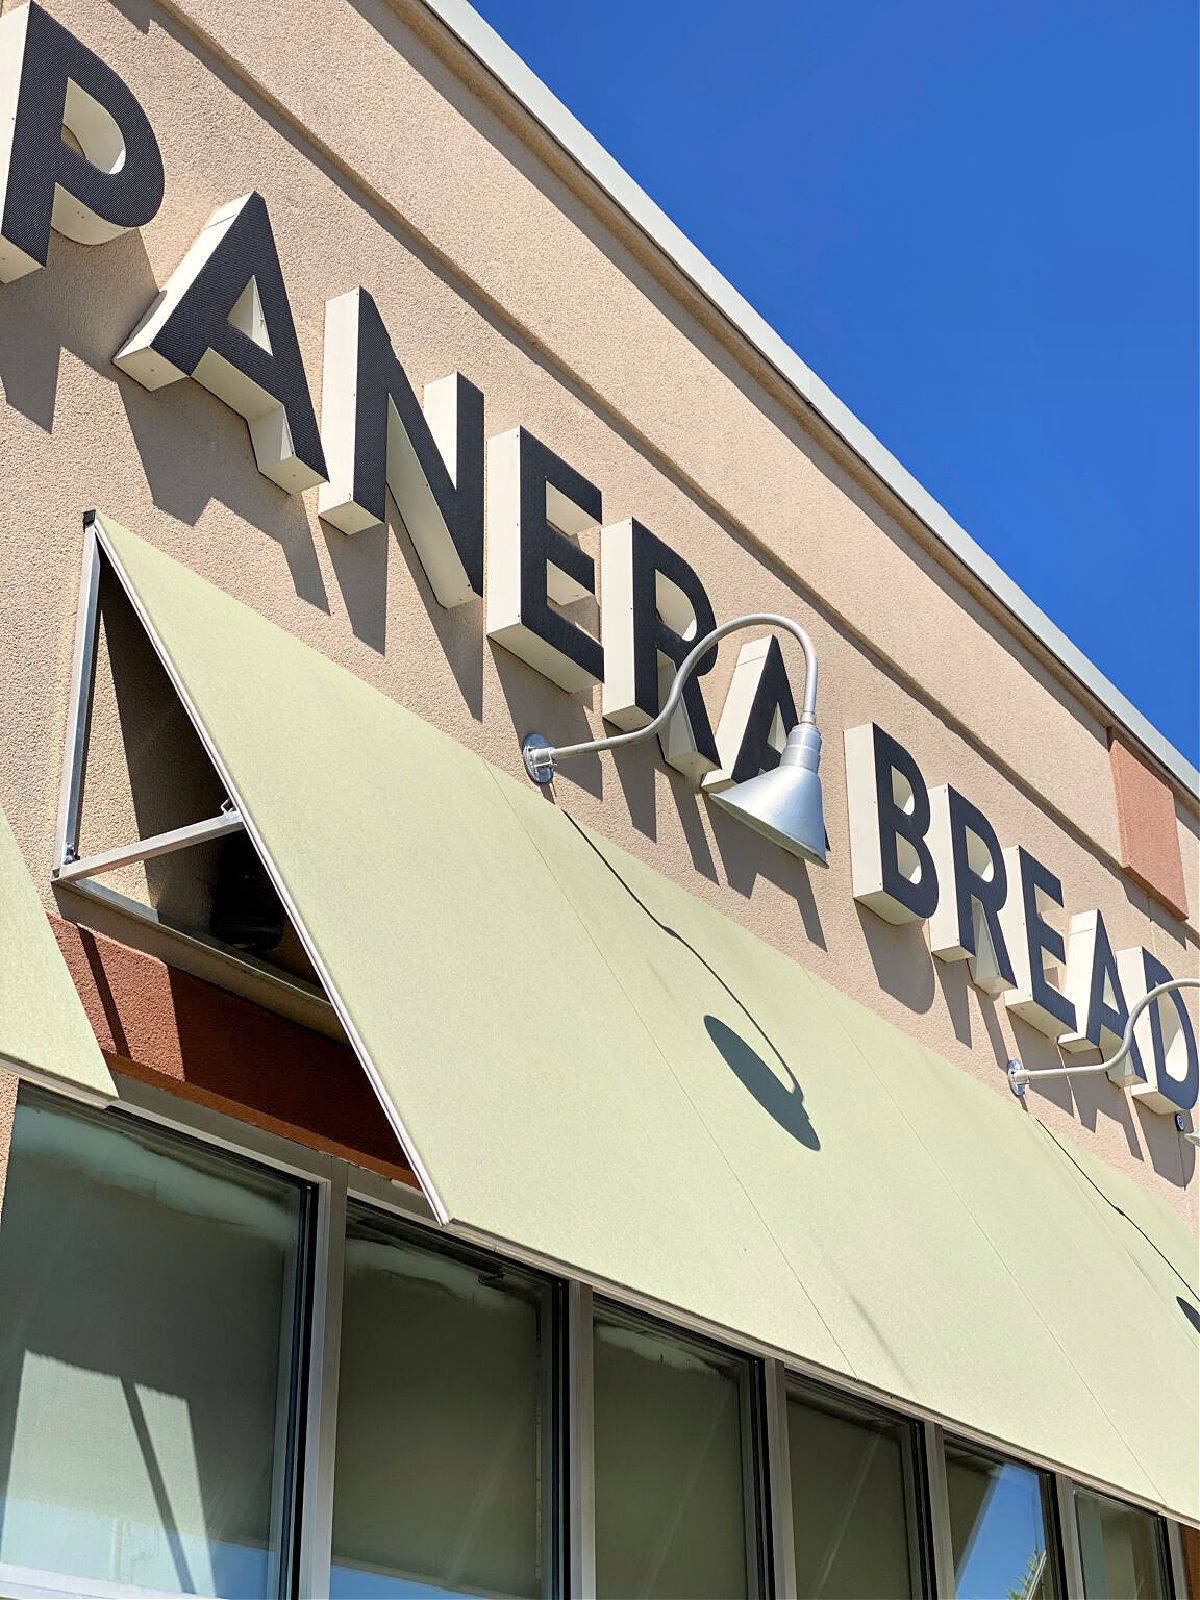 The front of Panera Bread restaurant.